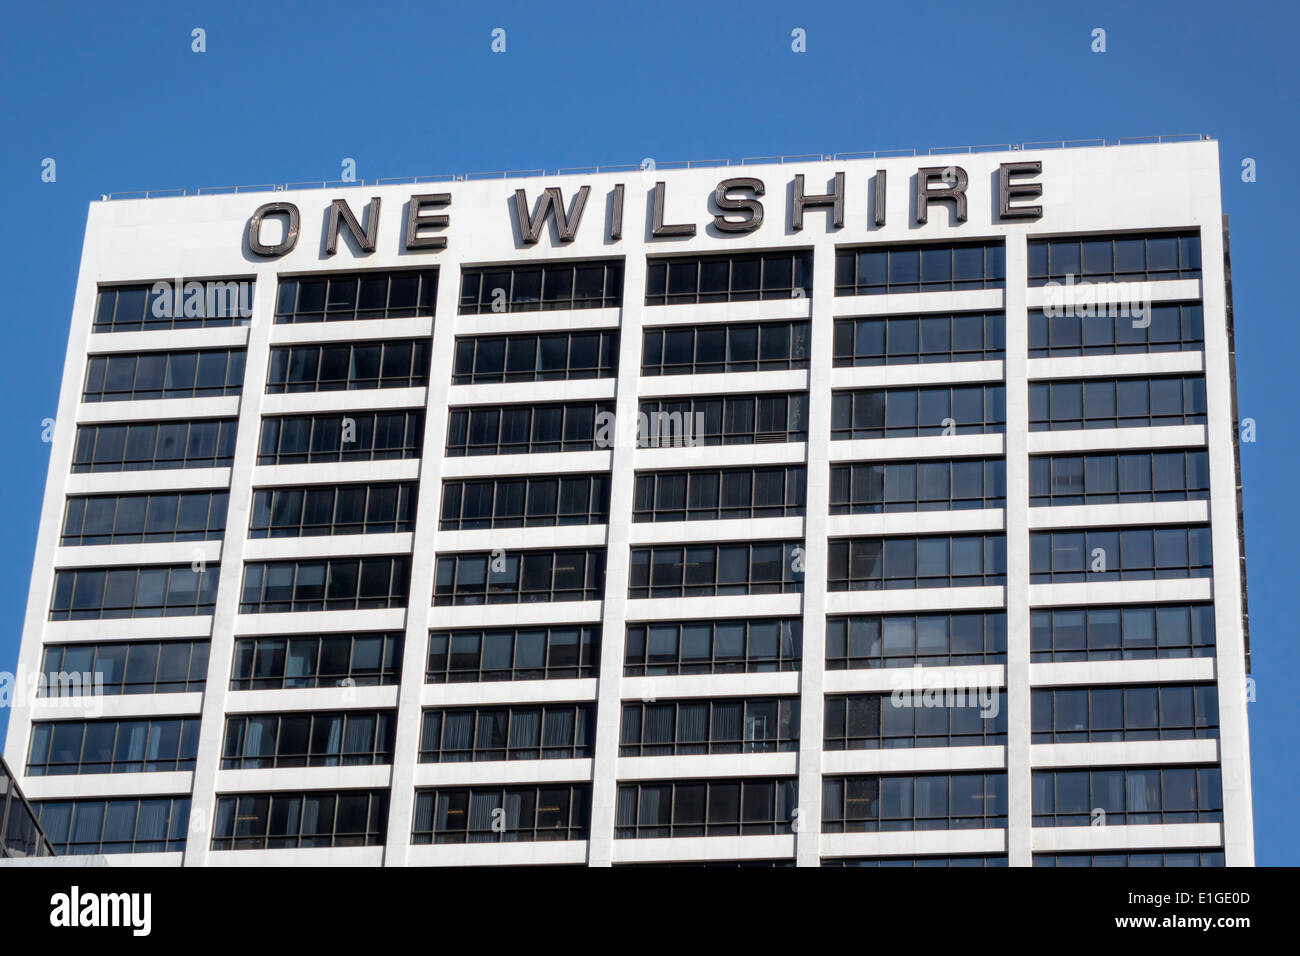 Los Angeles California CA L.A. Financial District One Wilshire Building skyscraper office building sign signage modern architecture Skidmore Owings gl - Stock Image